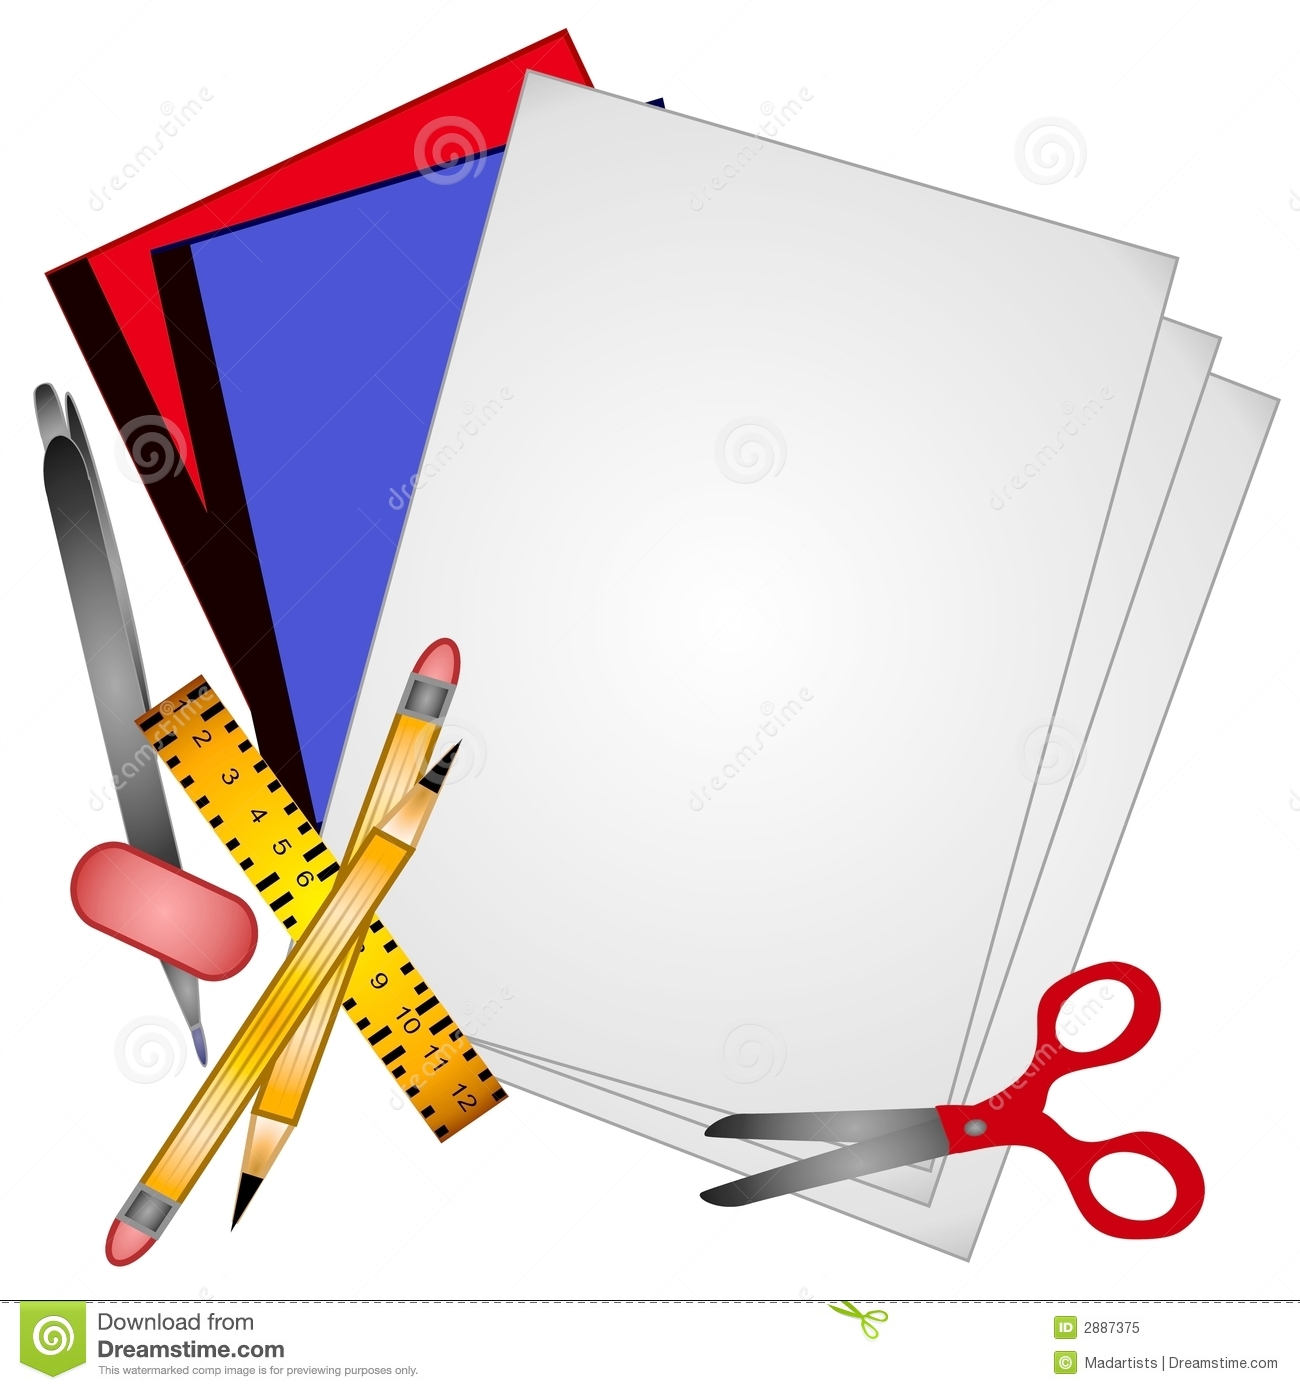 Pencil and free download. Paper clipart school papers